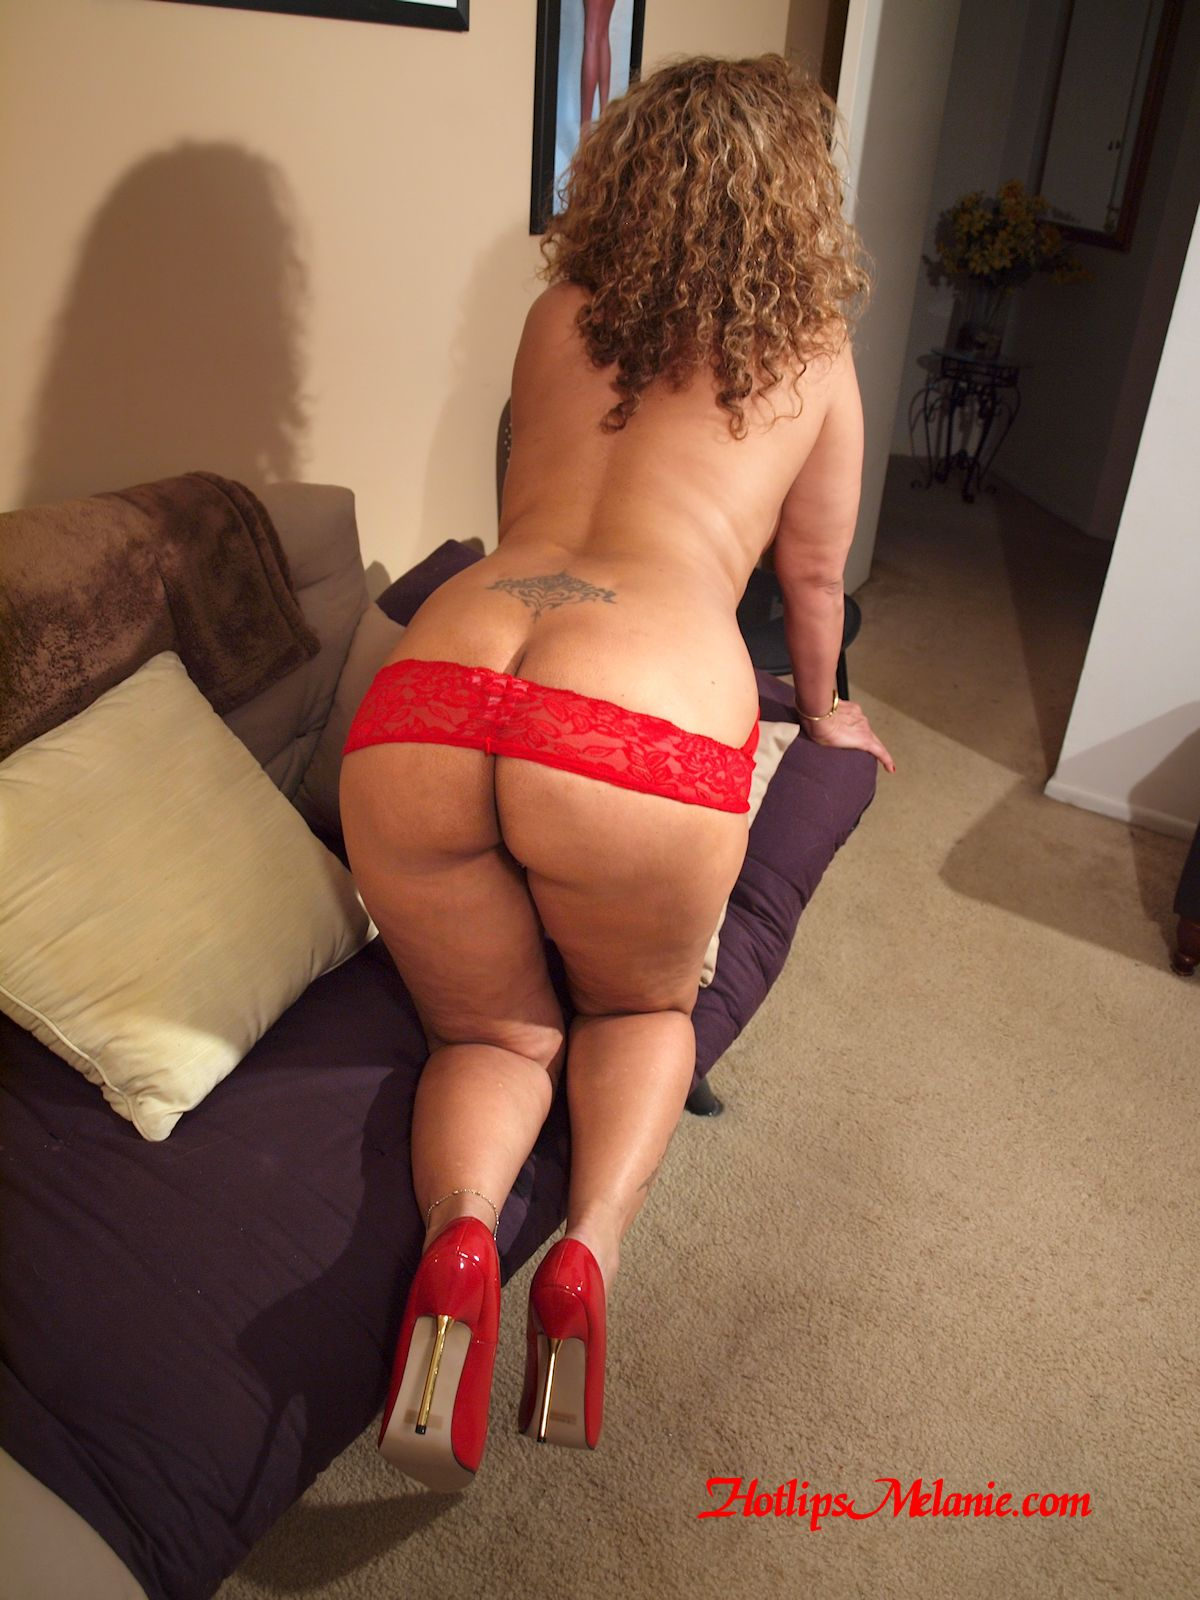 latina ass streaming